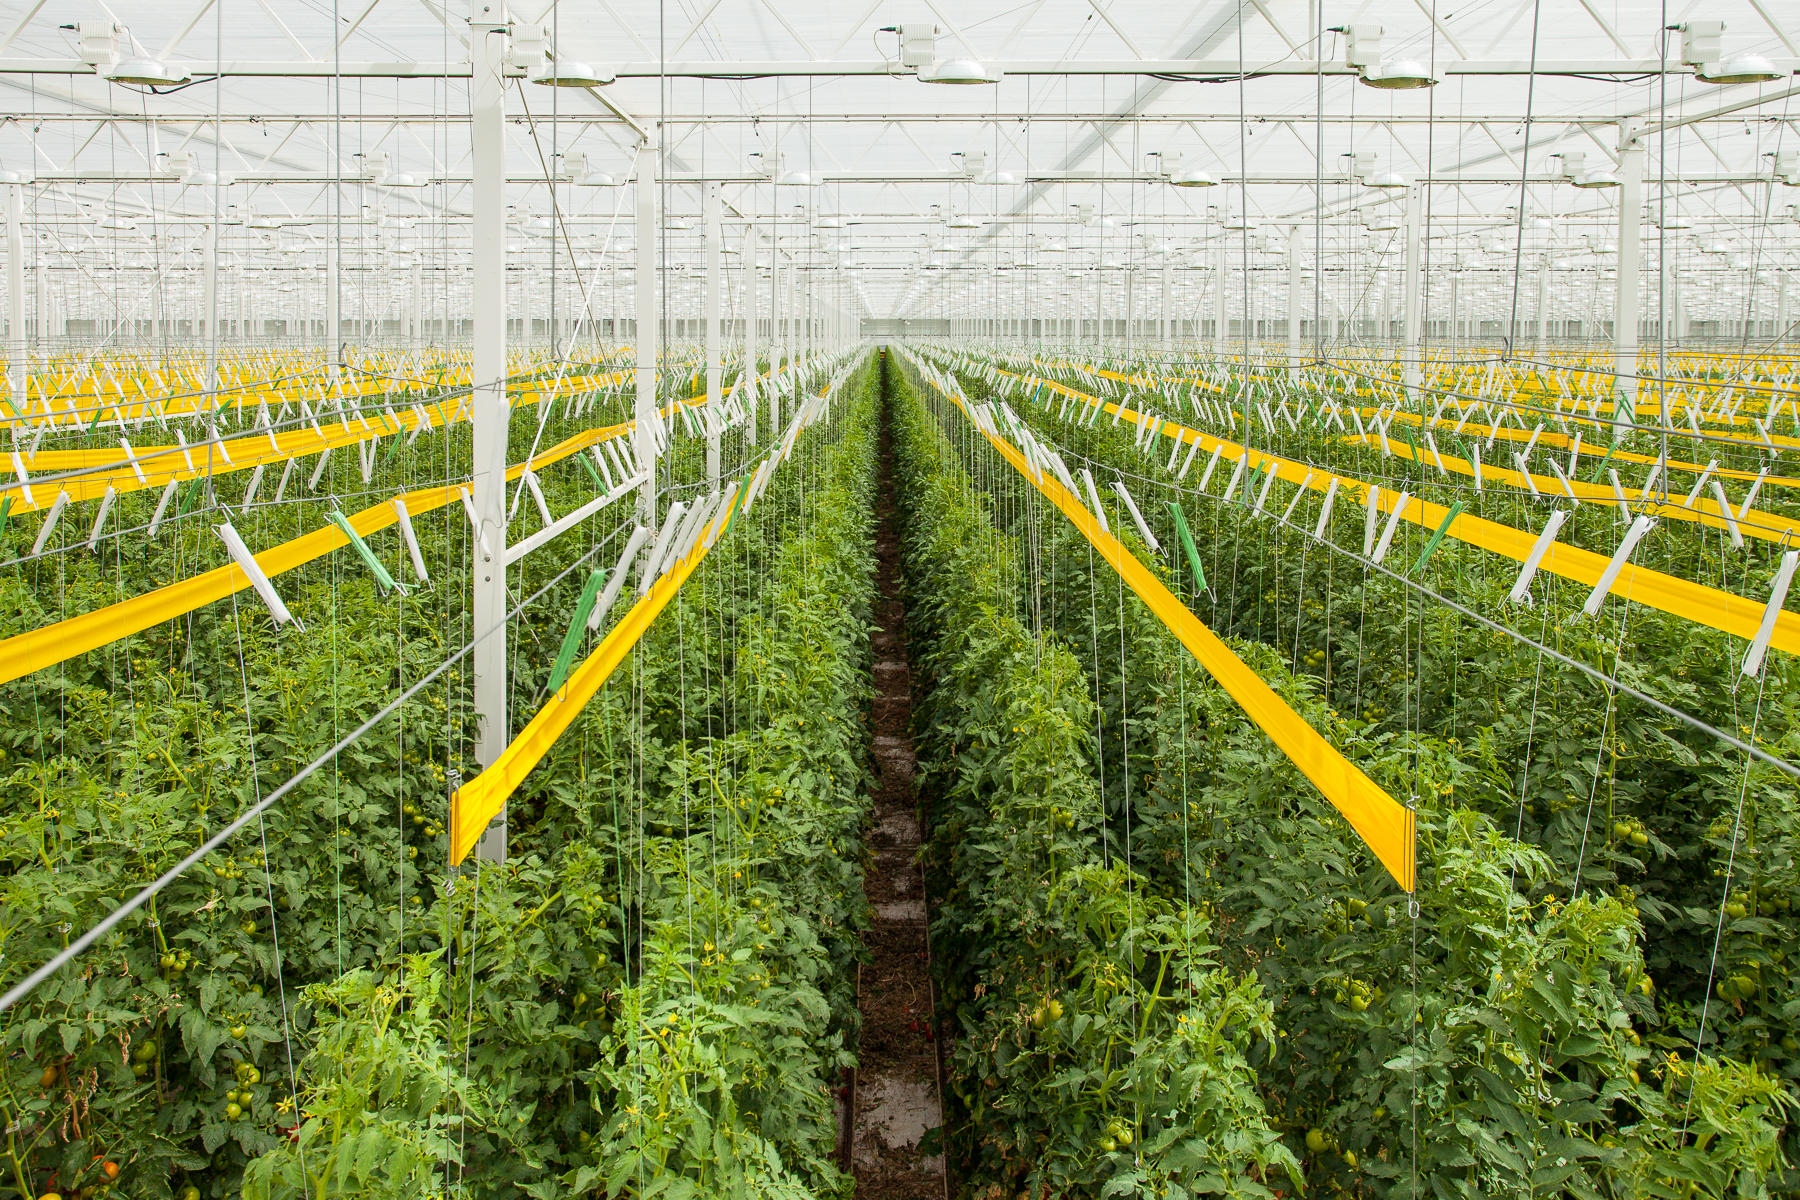 Marketing Images for Houwelings Tomatoes, a Hydroponic Greenhouse.